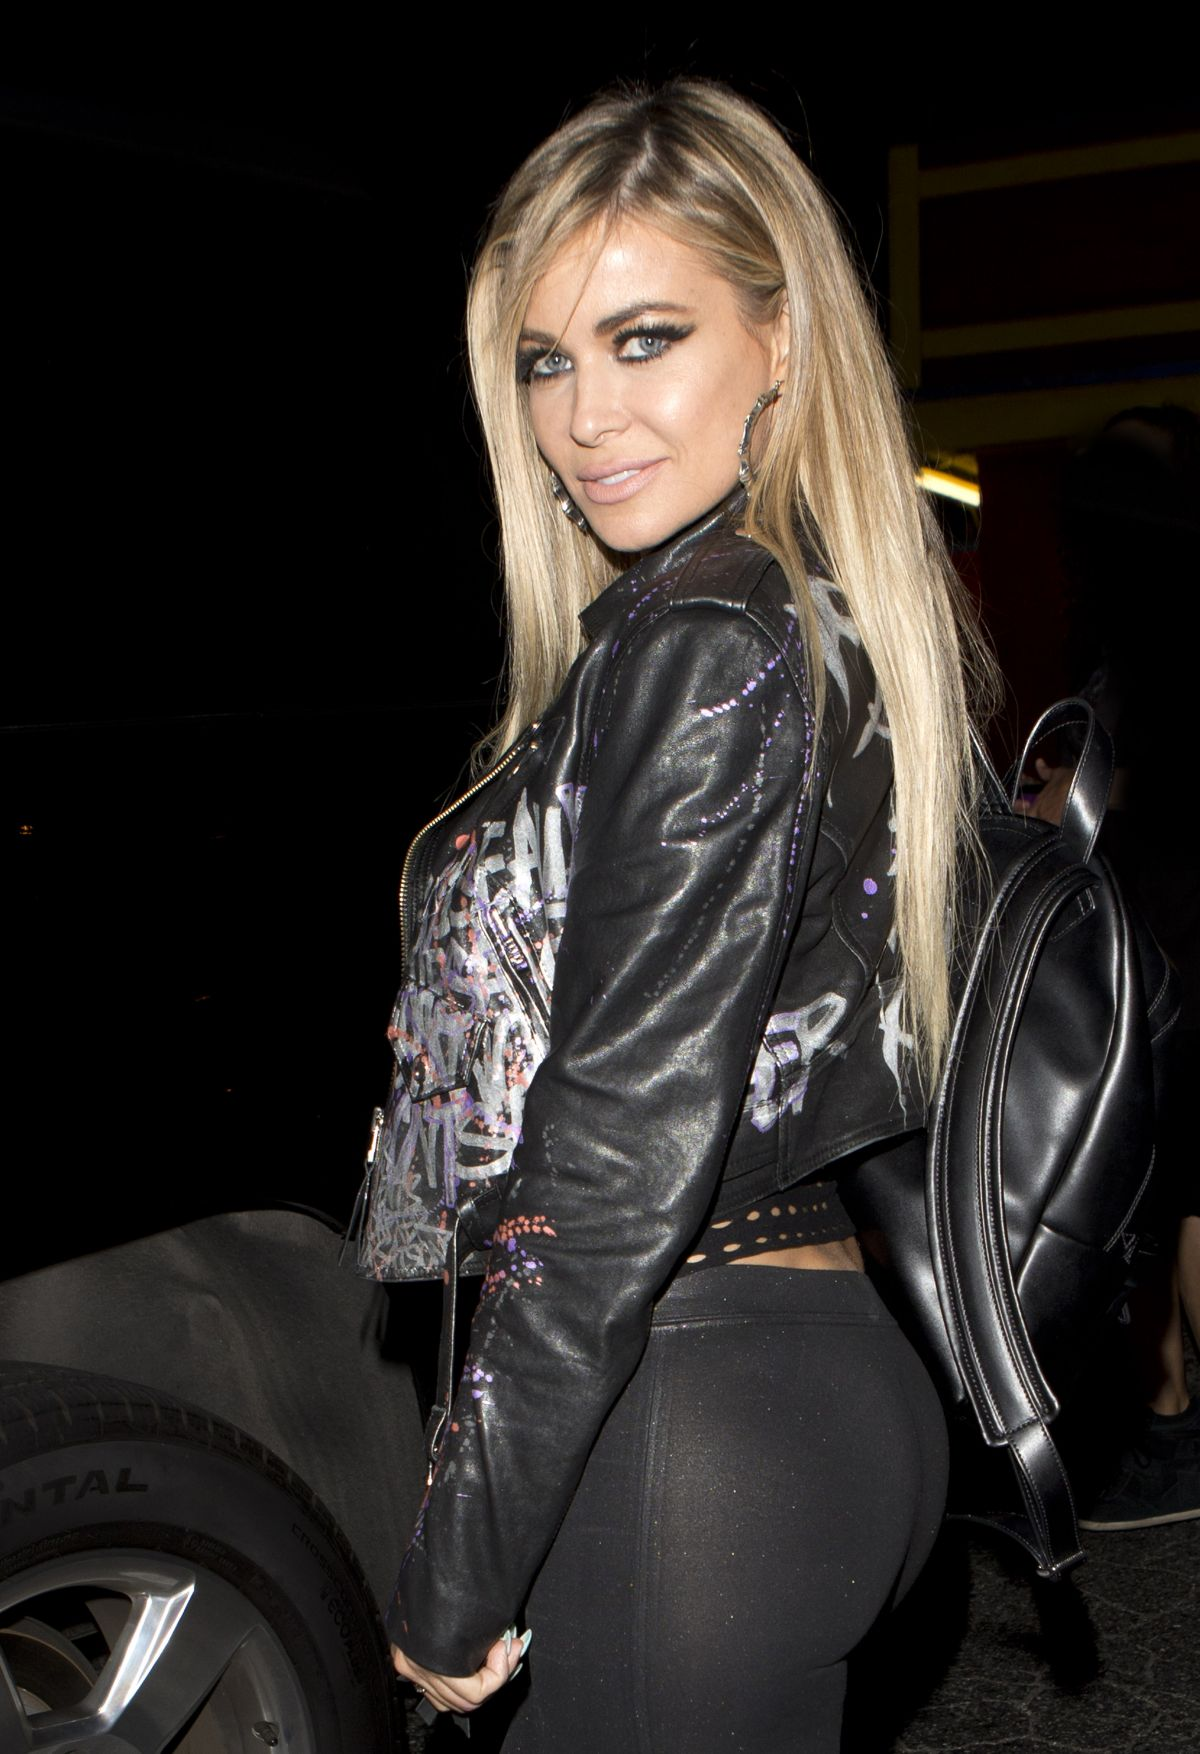 Carmen Electra Leaving The Abbey In West Hollywood - Celebzz - Celebzz